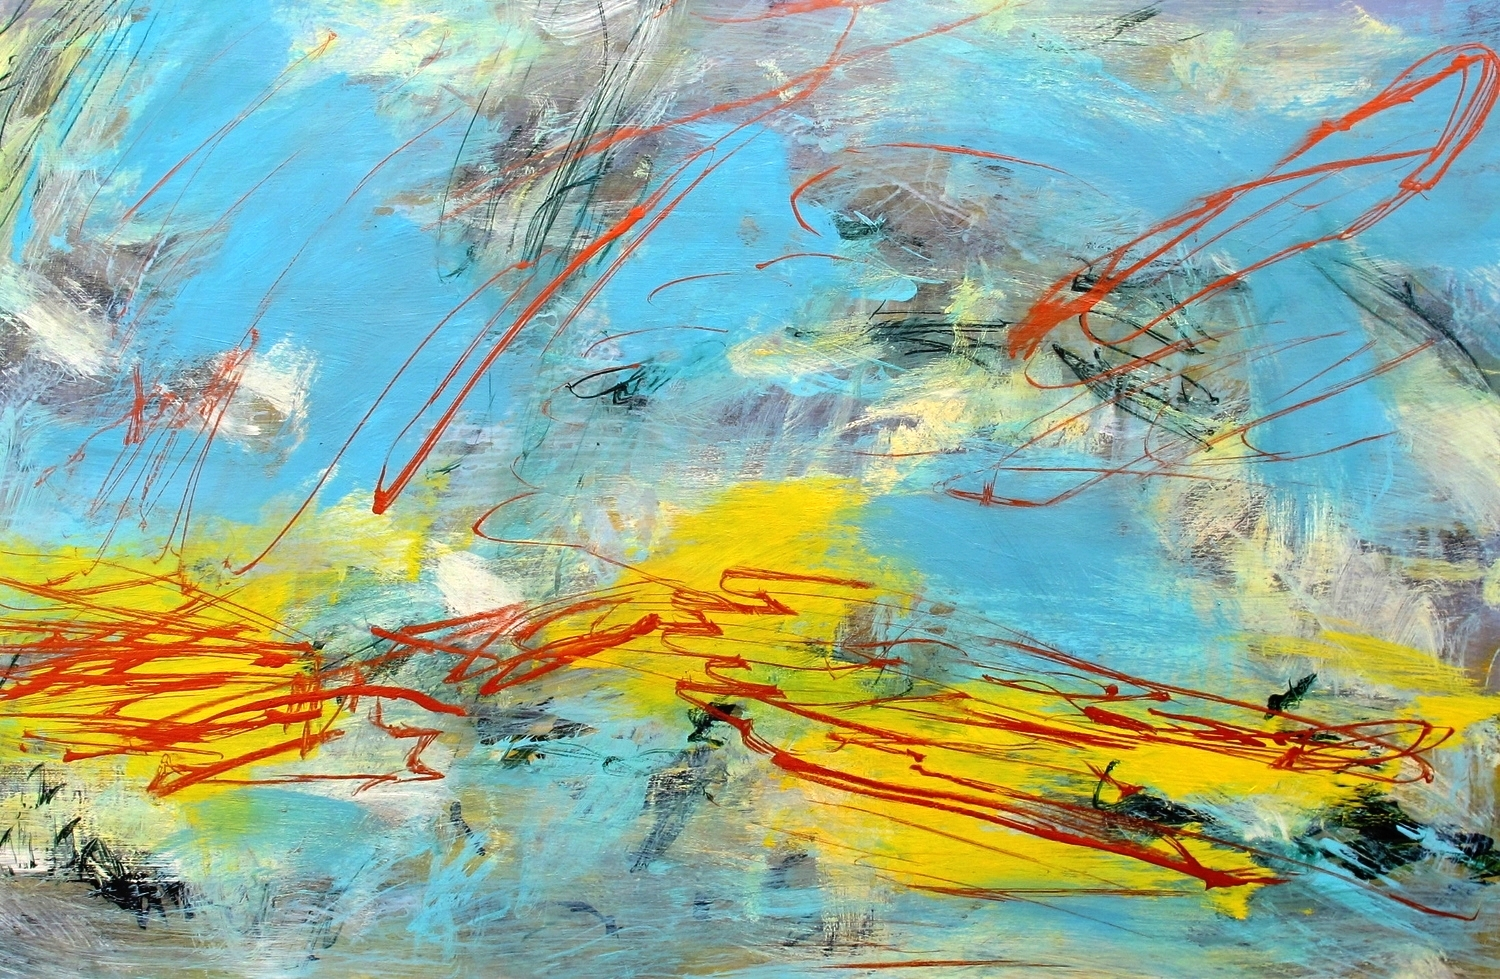 Atmosphere 9, acrylic on aluminum, 24''x36'', 2015